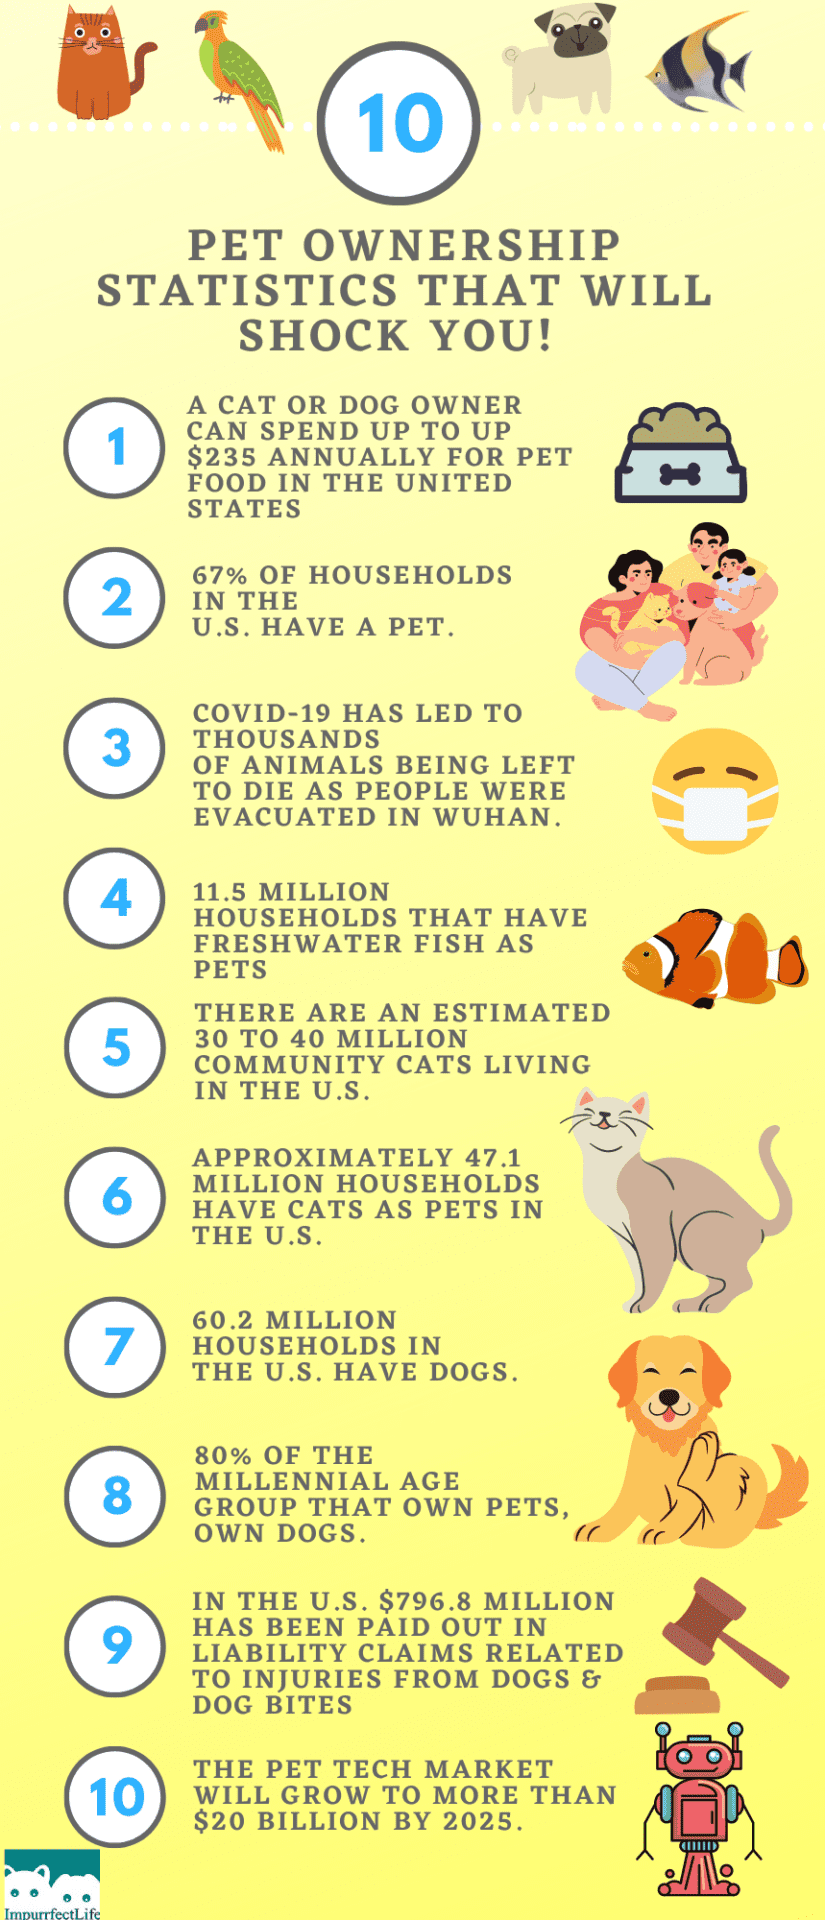 10 Pet Ownership Statistics That Will Shock You It S A Brand New Decade And I Thought It Would Be Interesting To Share A Few In 2020 Pet Ownership Pets Helpful Hints